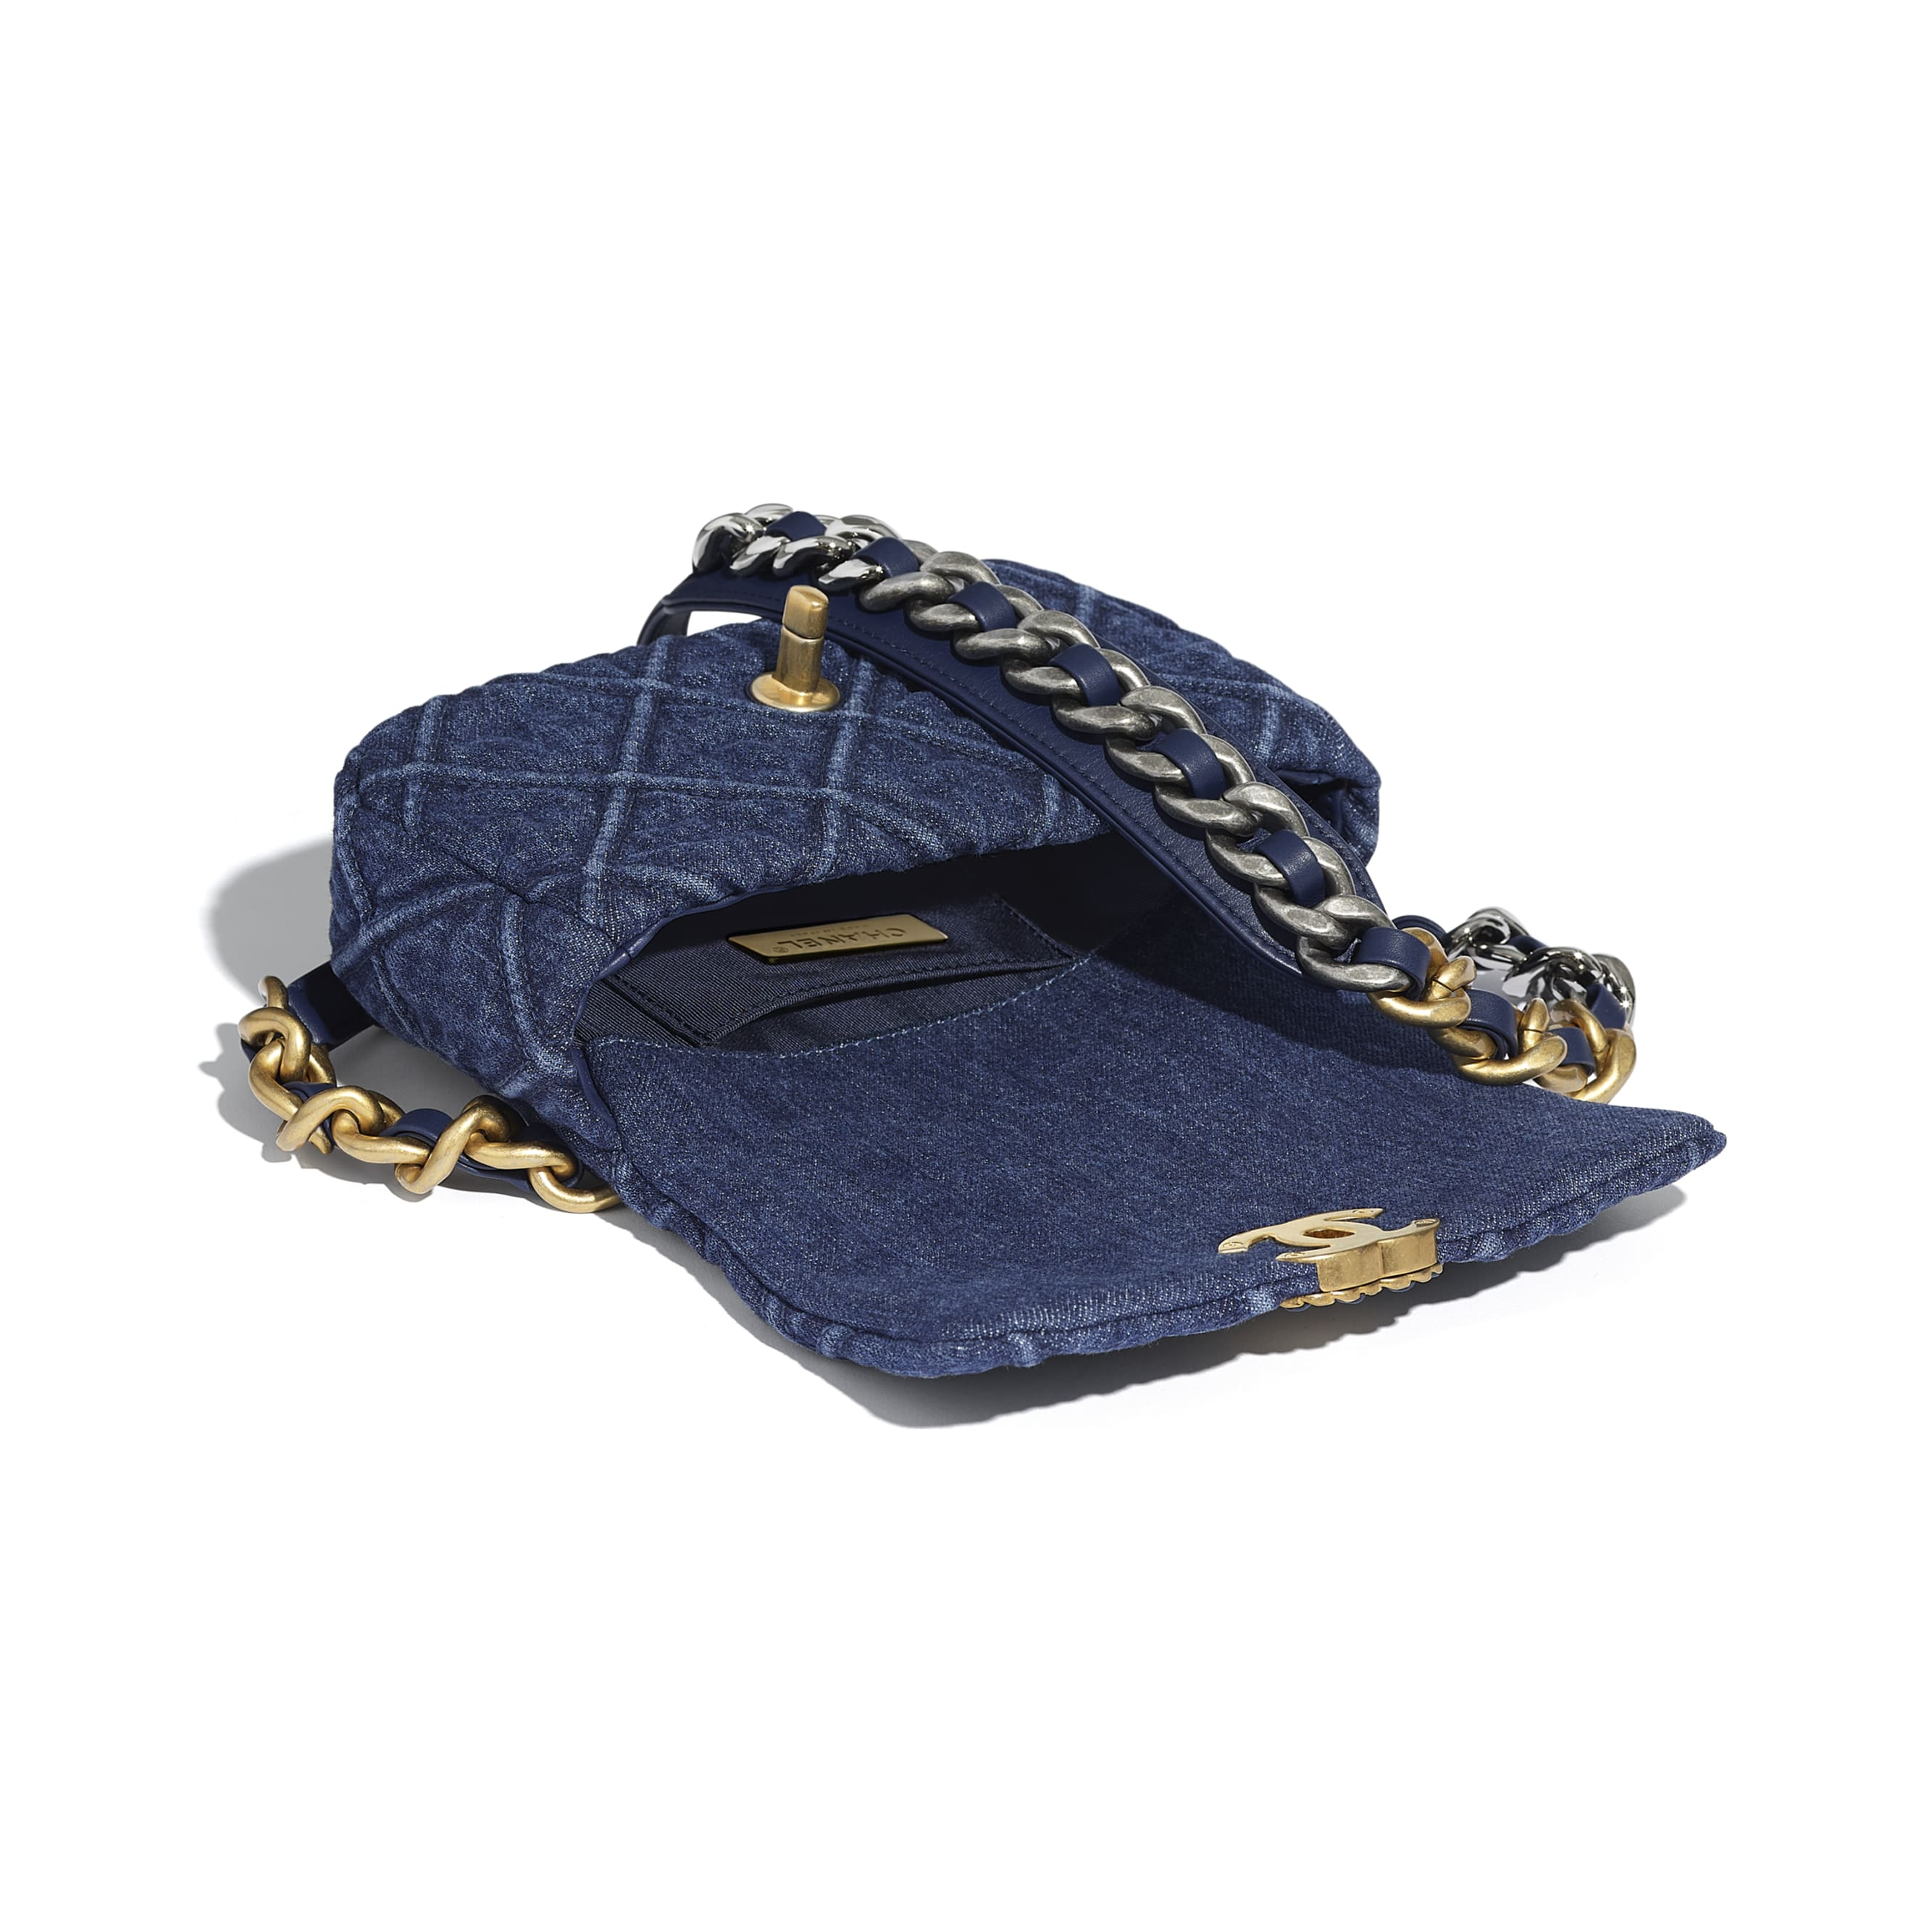 CHANEL 19 Waist Bag - Blue - Denim, Gold-Tone, Silver-Tone & Ruthenium-Finish Metal - CHANEL - Other view - see standard sized version